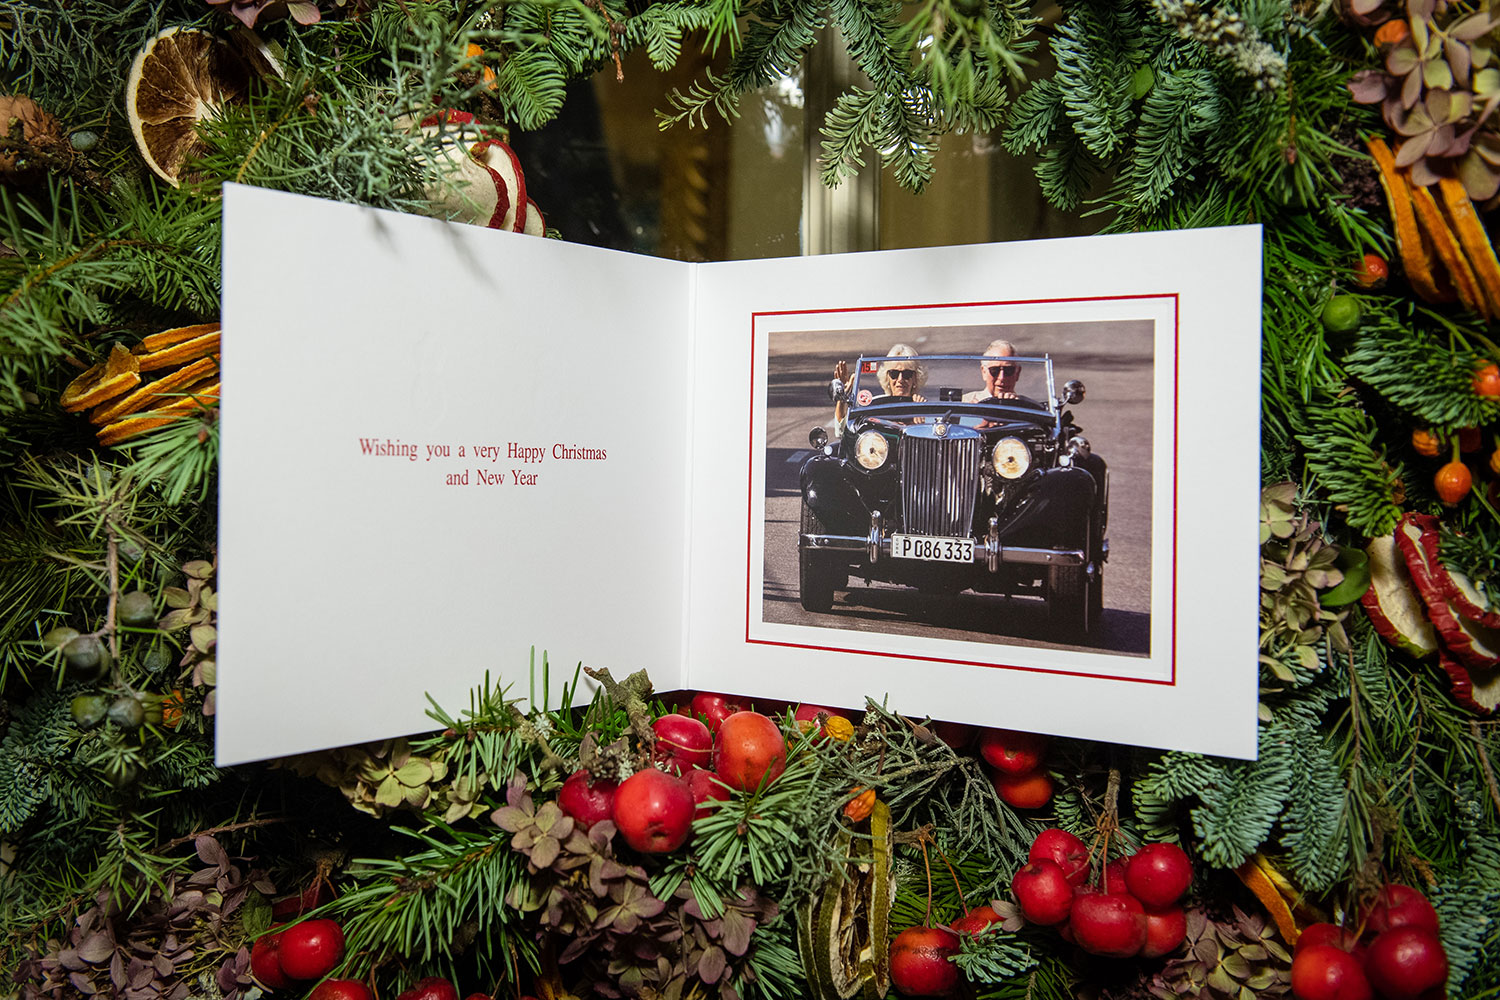 2019 Christmas card of Prince Charles, Prince of Wales and Camilla, Duchess of Cornwall on a Christmas tree at Clarence House on December 20, 2019 in London, England